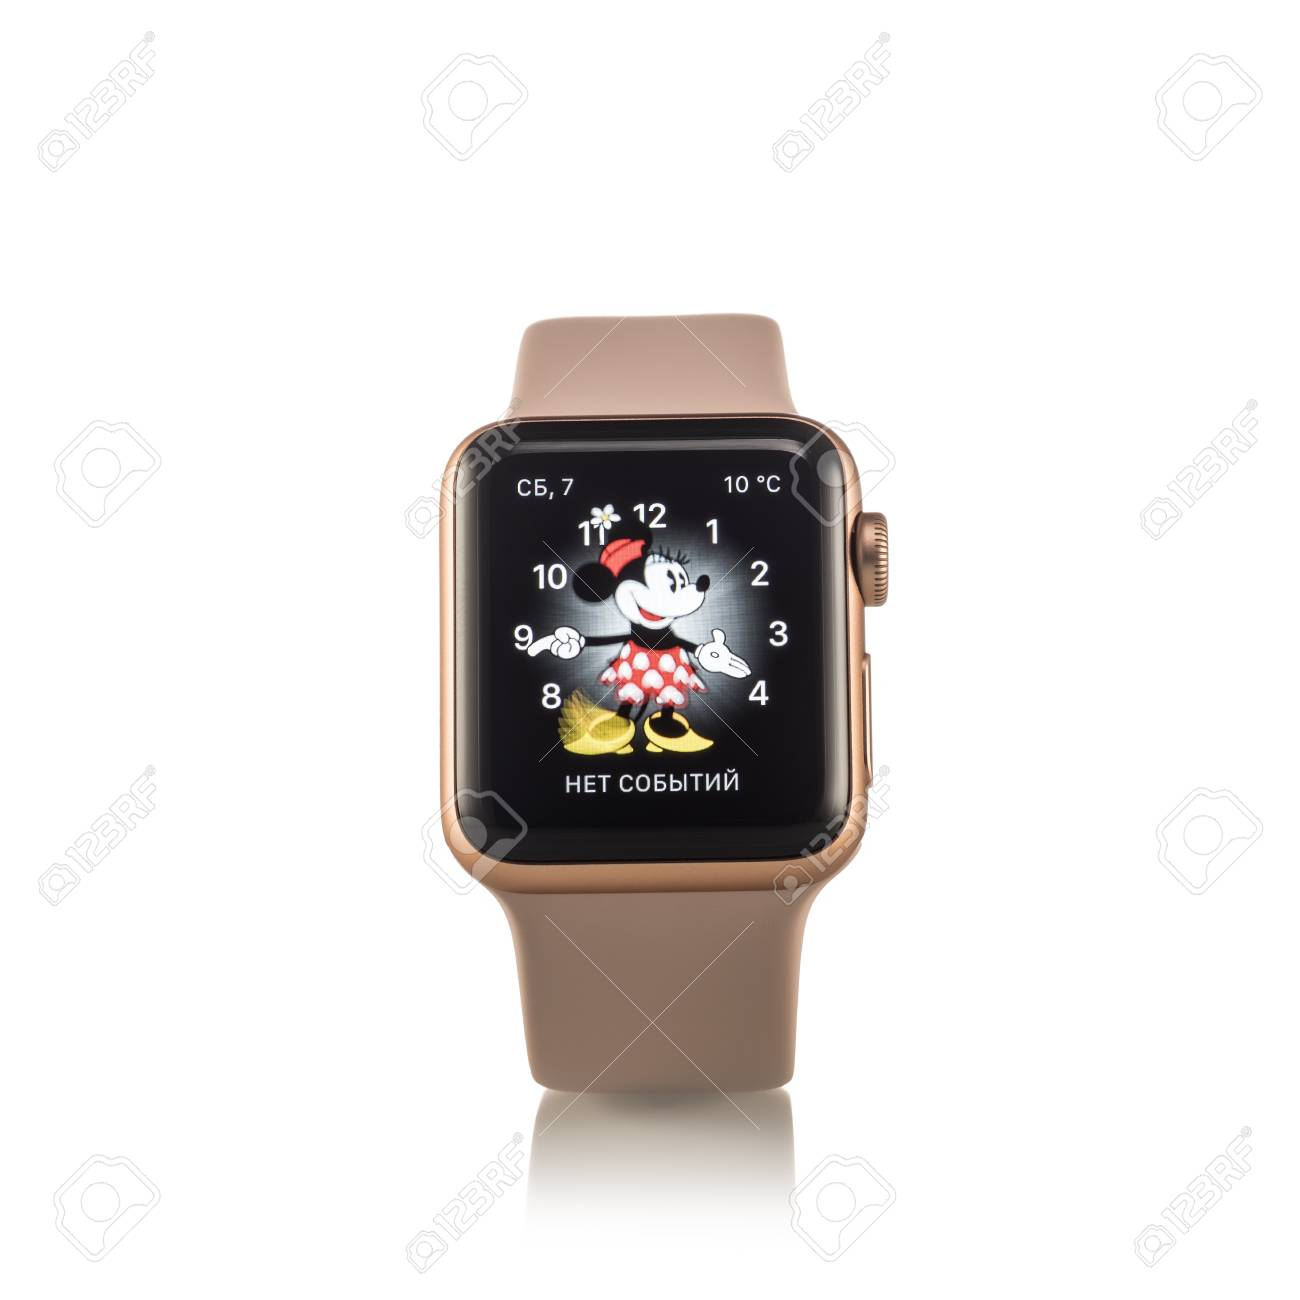 sports shoes fce9f 16562 MOSCOW, RUSSIA - OCTOBER 07, 2017: New Apple Watch Series 3 Gold ...